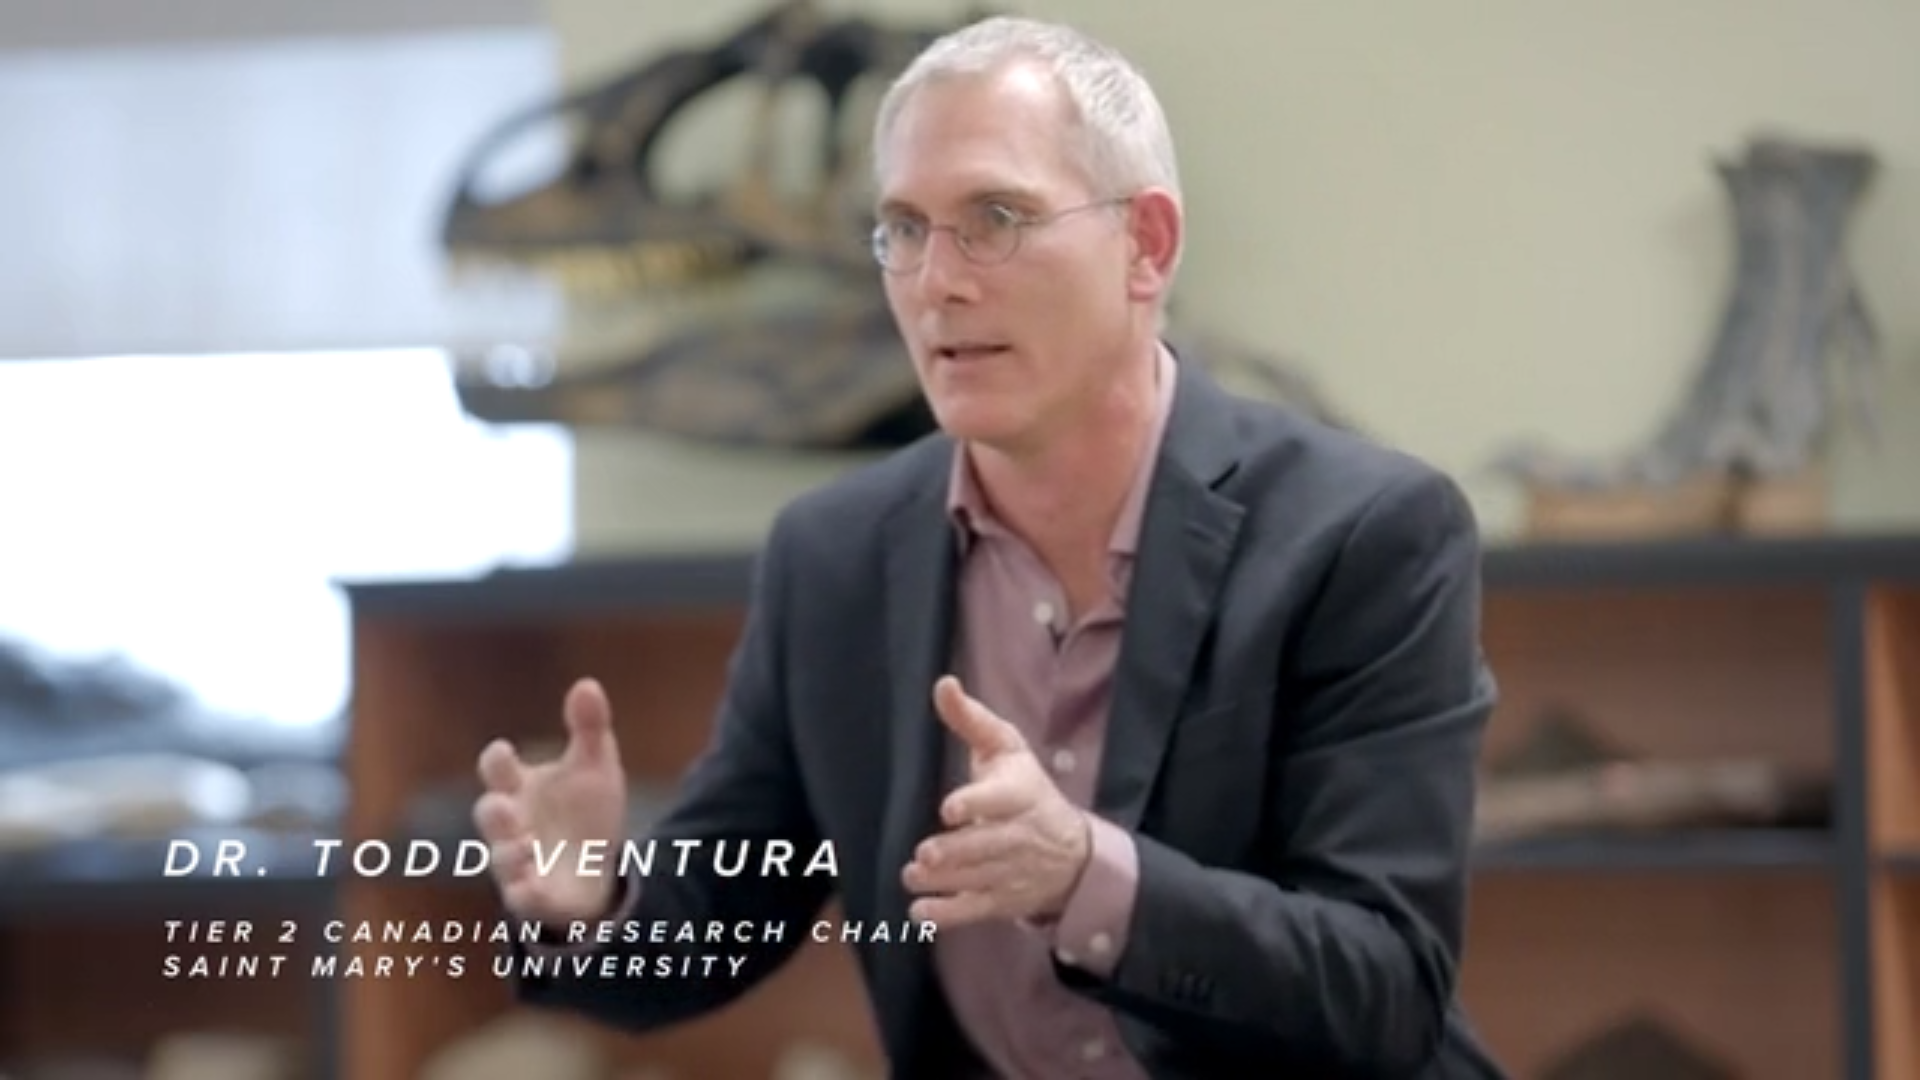 Project co-lead Dr. Todd Ventura